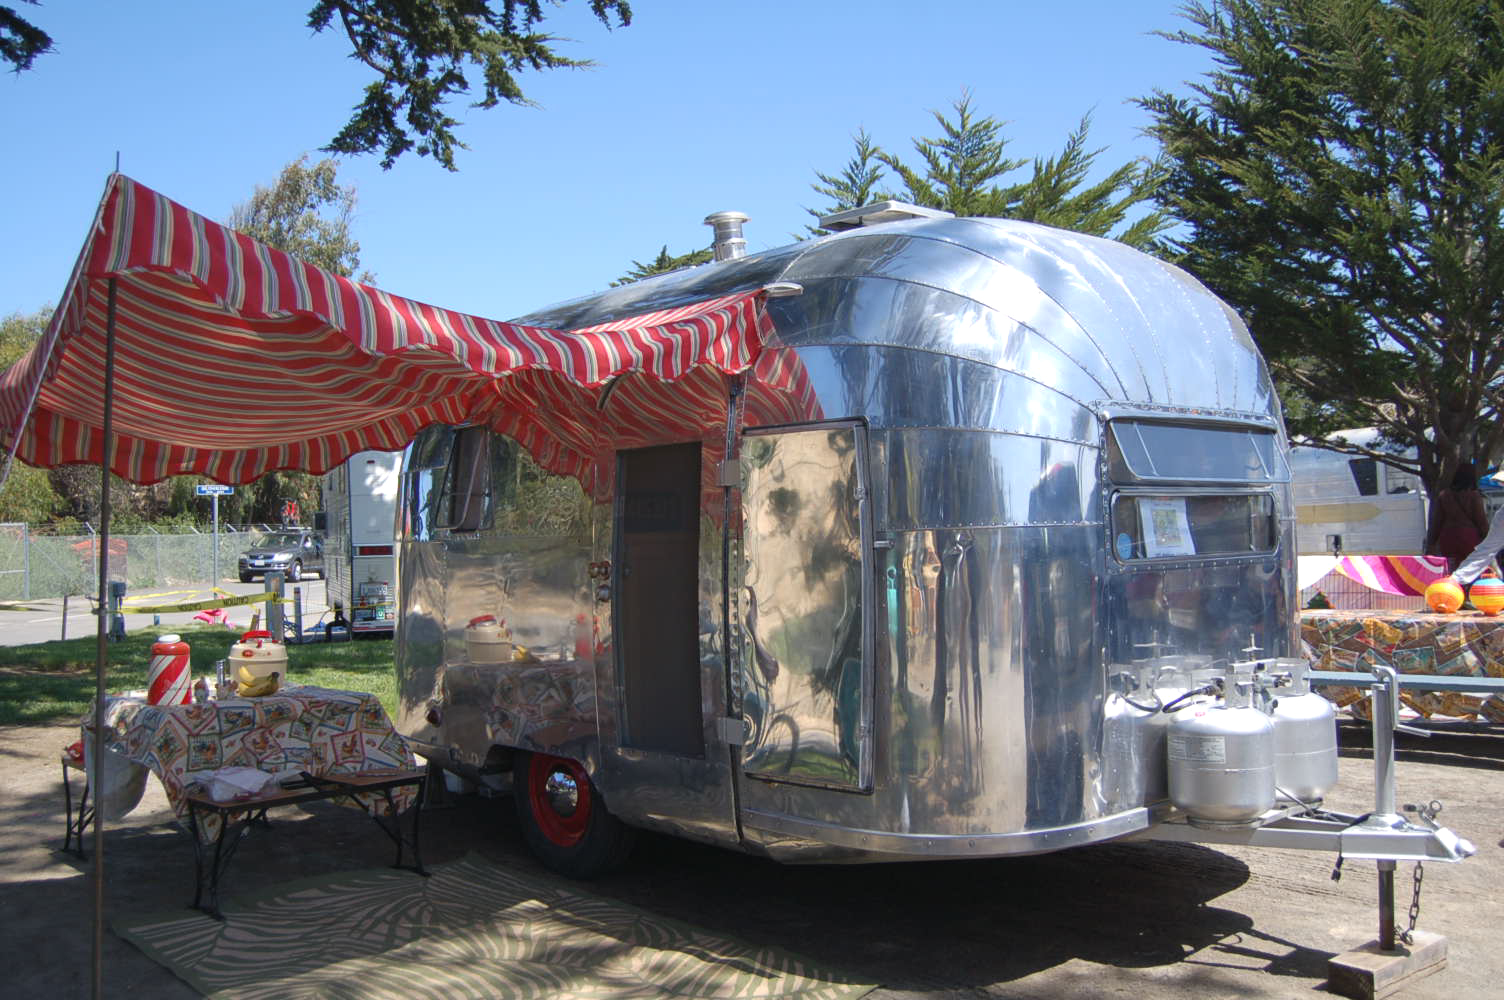 Red White And Green Striped Side Awning On A 1951 Airstream Cruisette Trailer